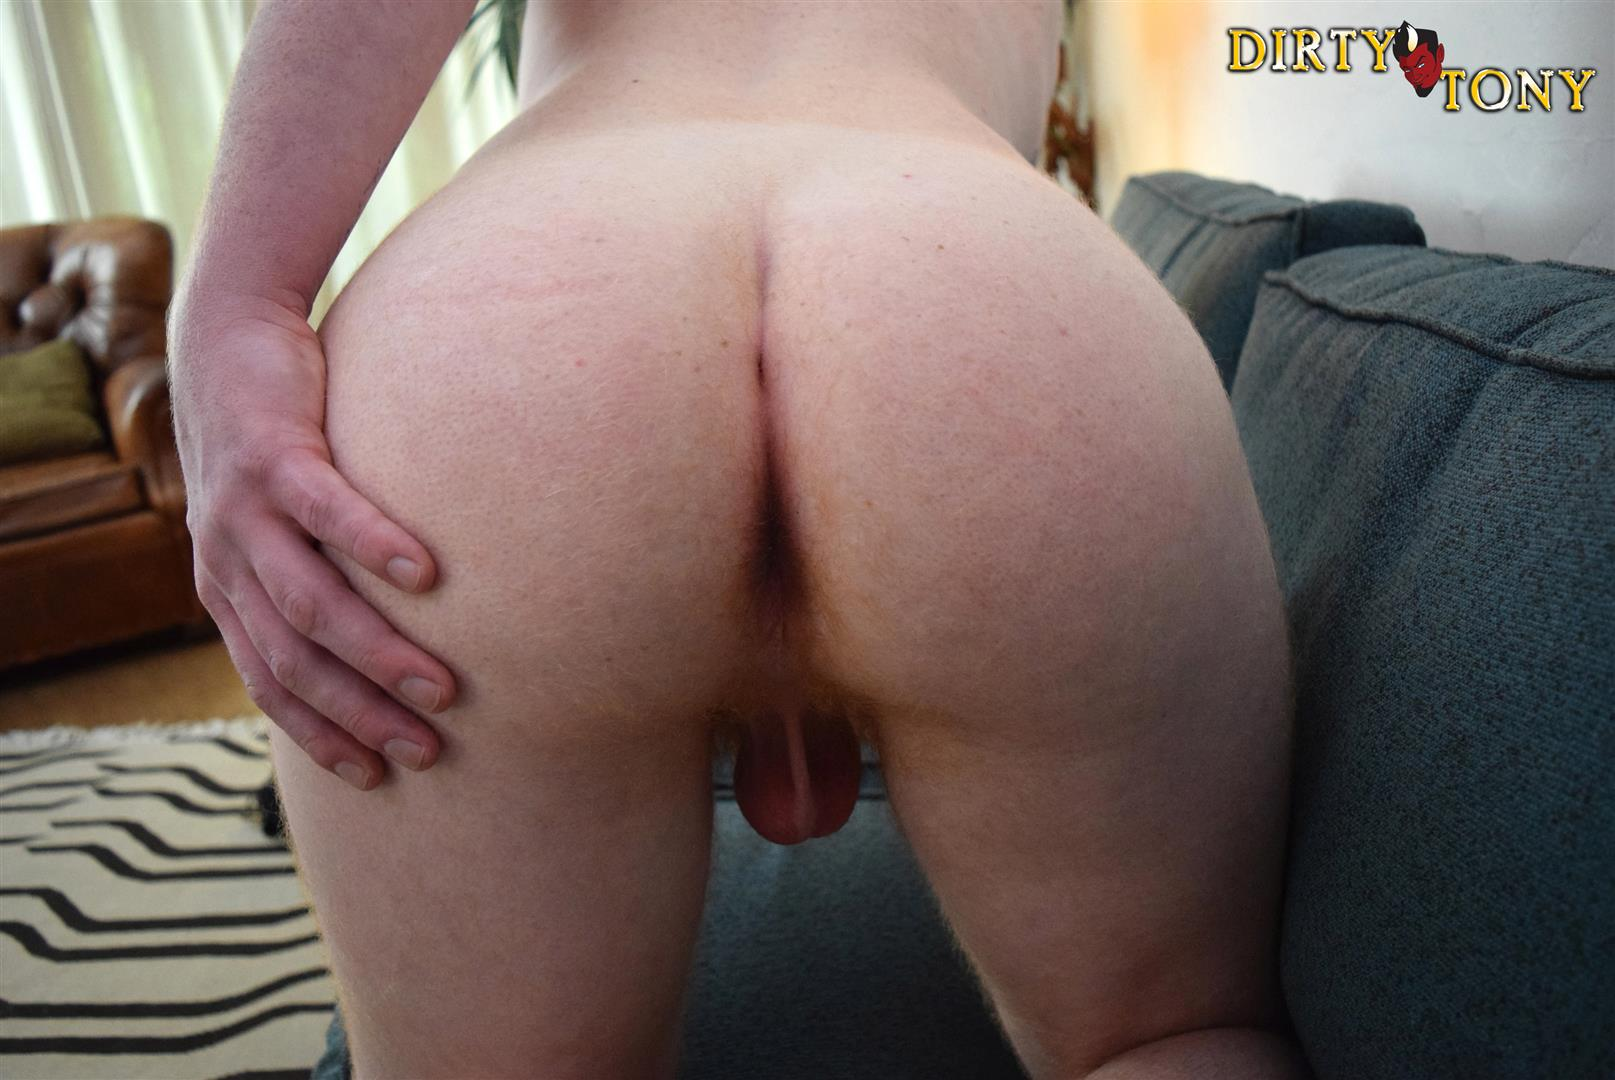 Dirty-Tony-Max-Breeker-Redheaded-Twink-Masturbation-Amateur-Gay-Porn-12 Bisexual 19 Year Old Redheaded Twink Auditions For Gay Porn